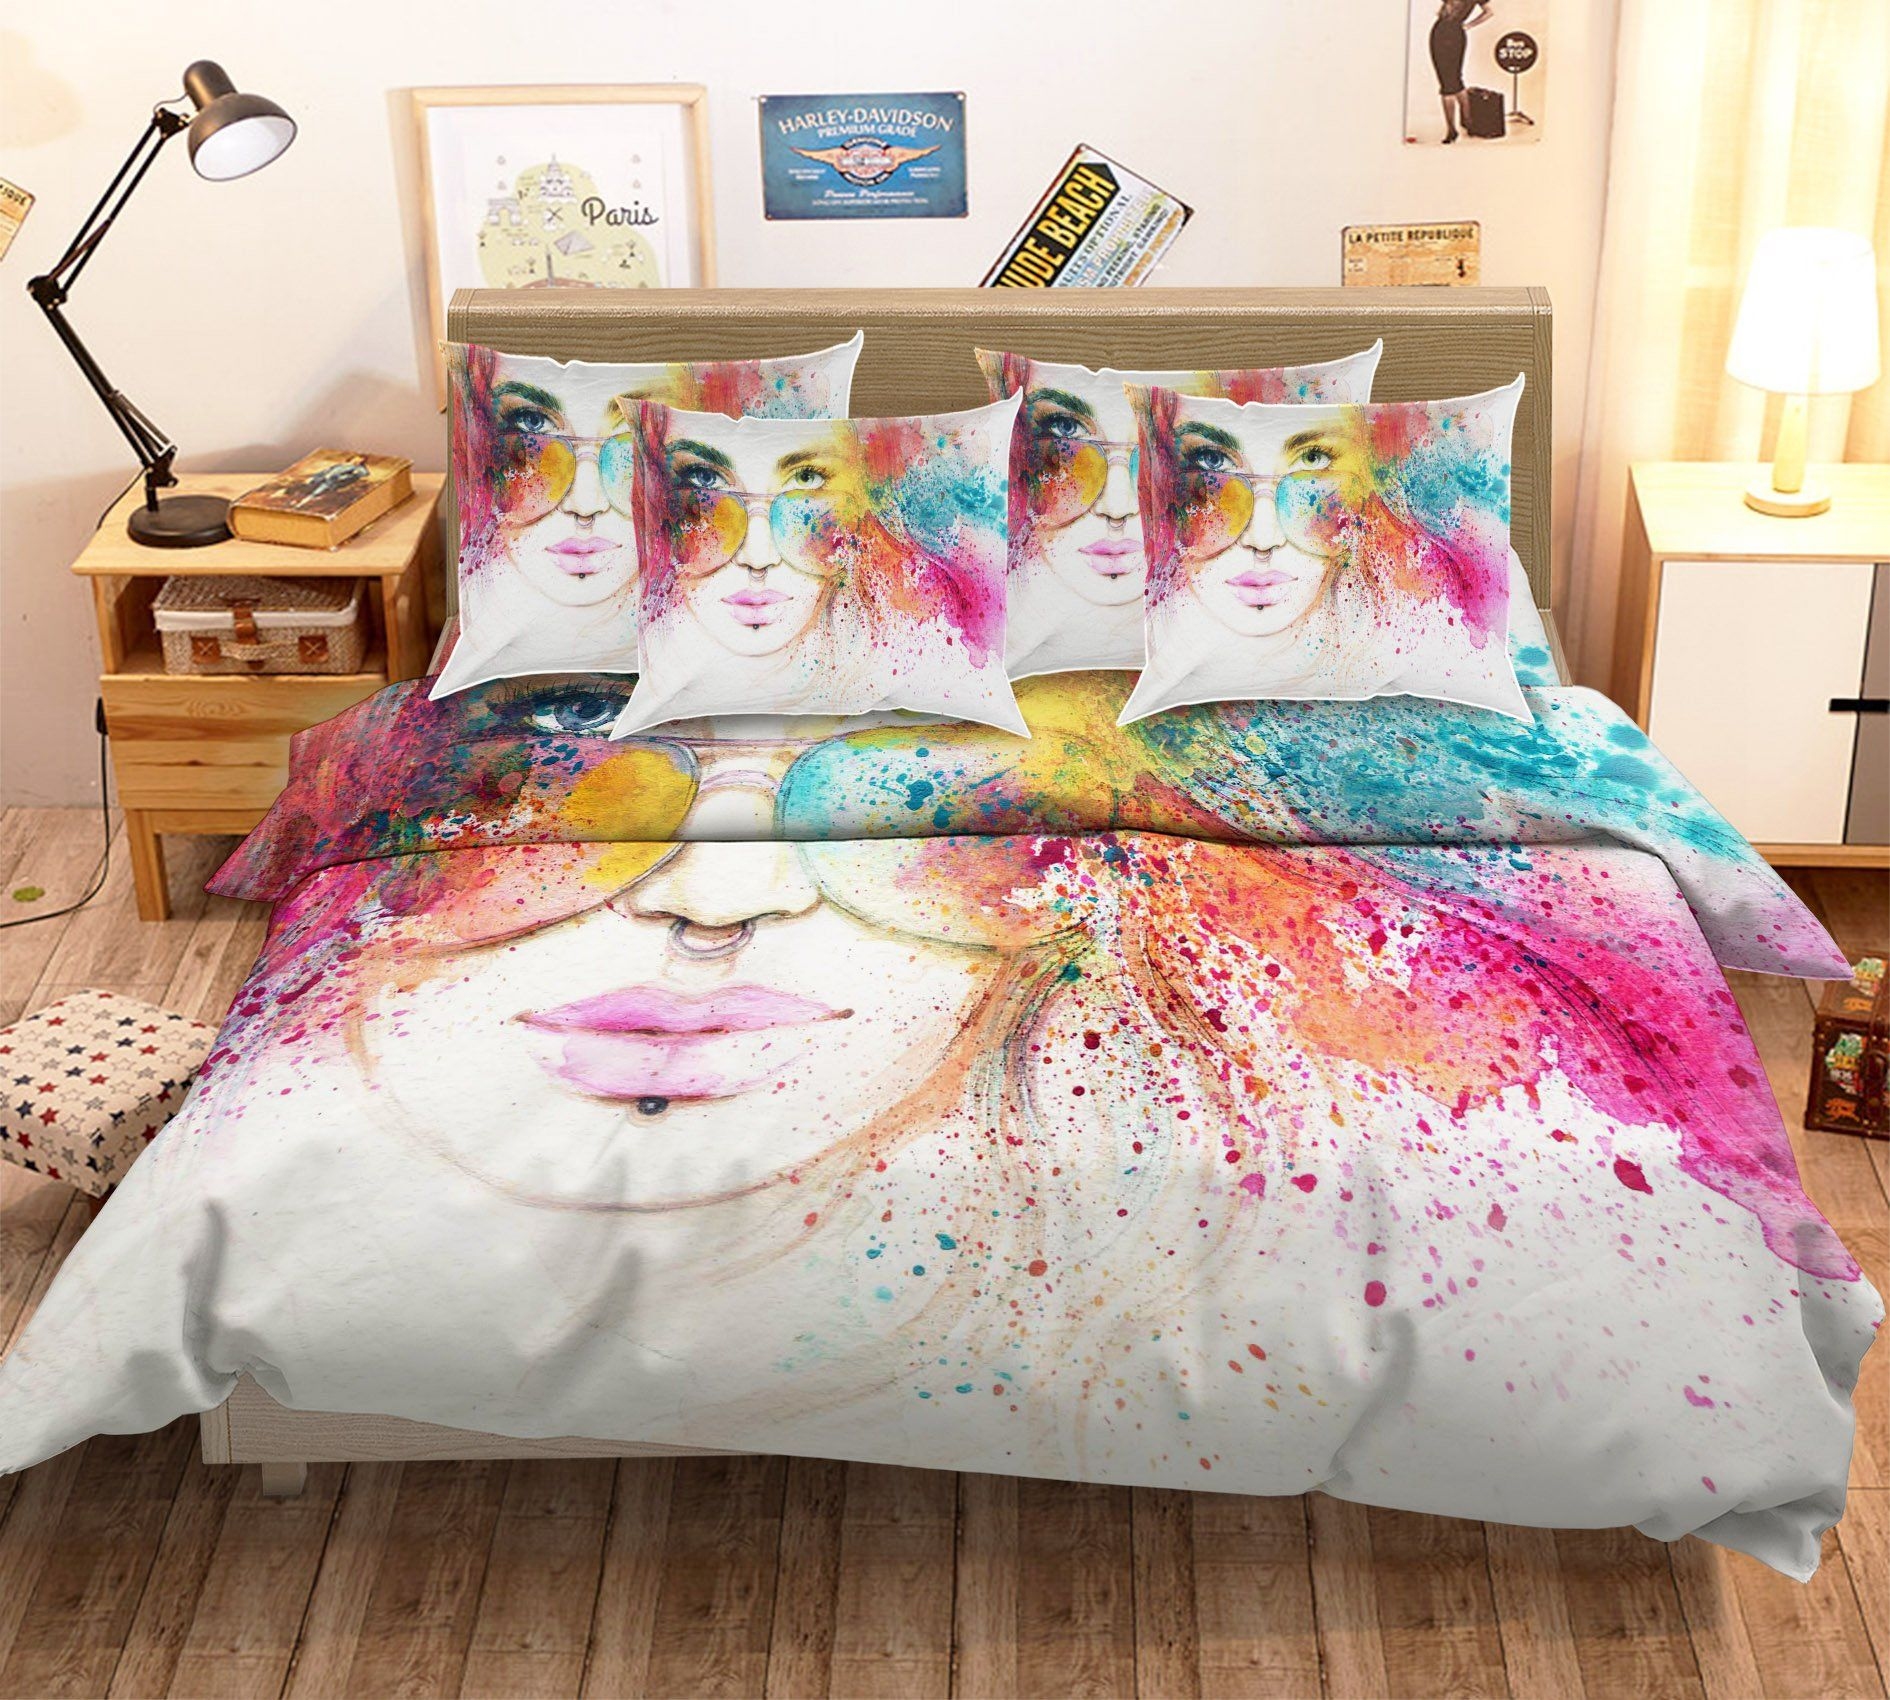 3D Graffiti Woman 28 Bed Pillowcases Quilt Wallpaper AJ Wallpaper